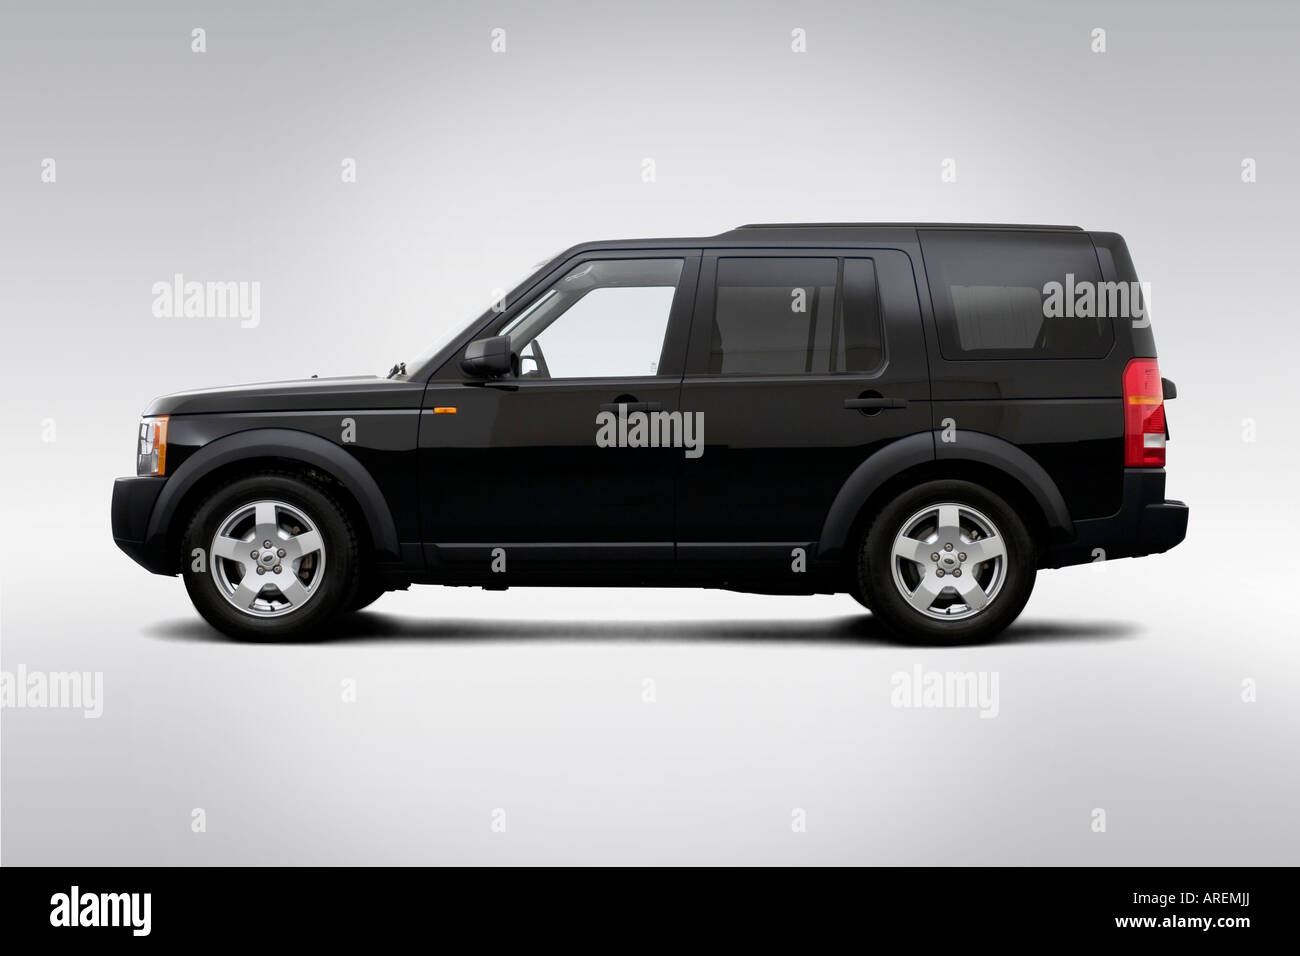 cars cargurus sale rover overview land pic for landrover